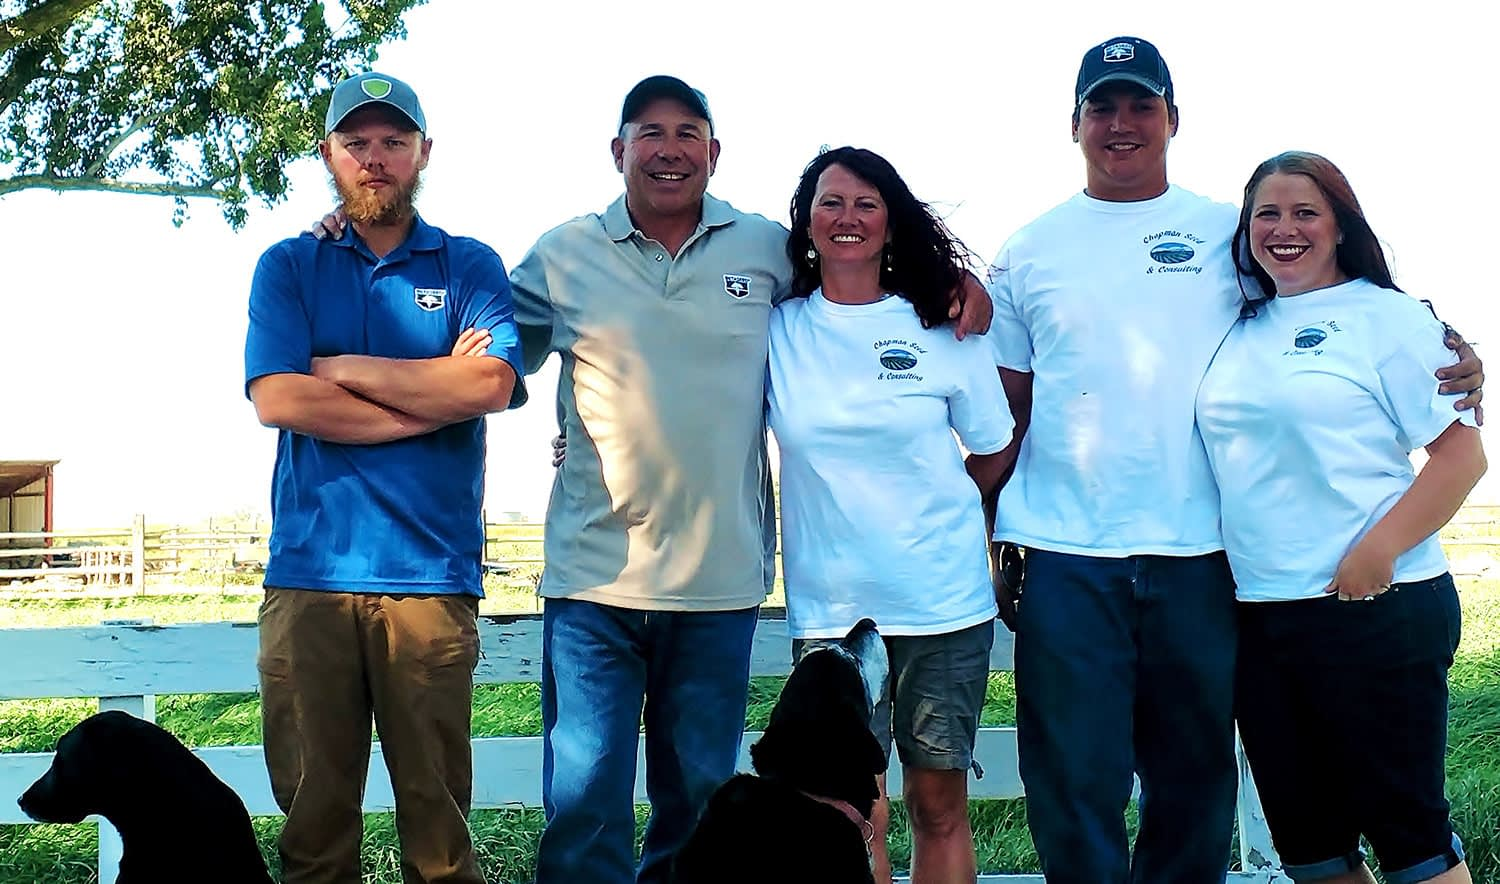 The Chapman Seed & Consulting Staff